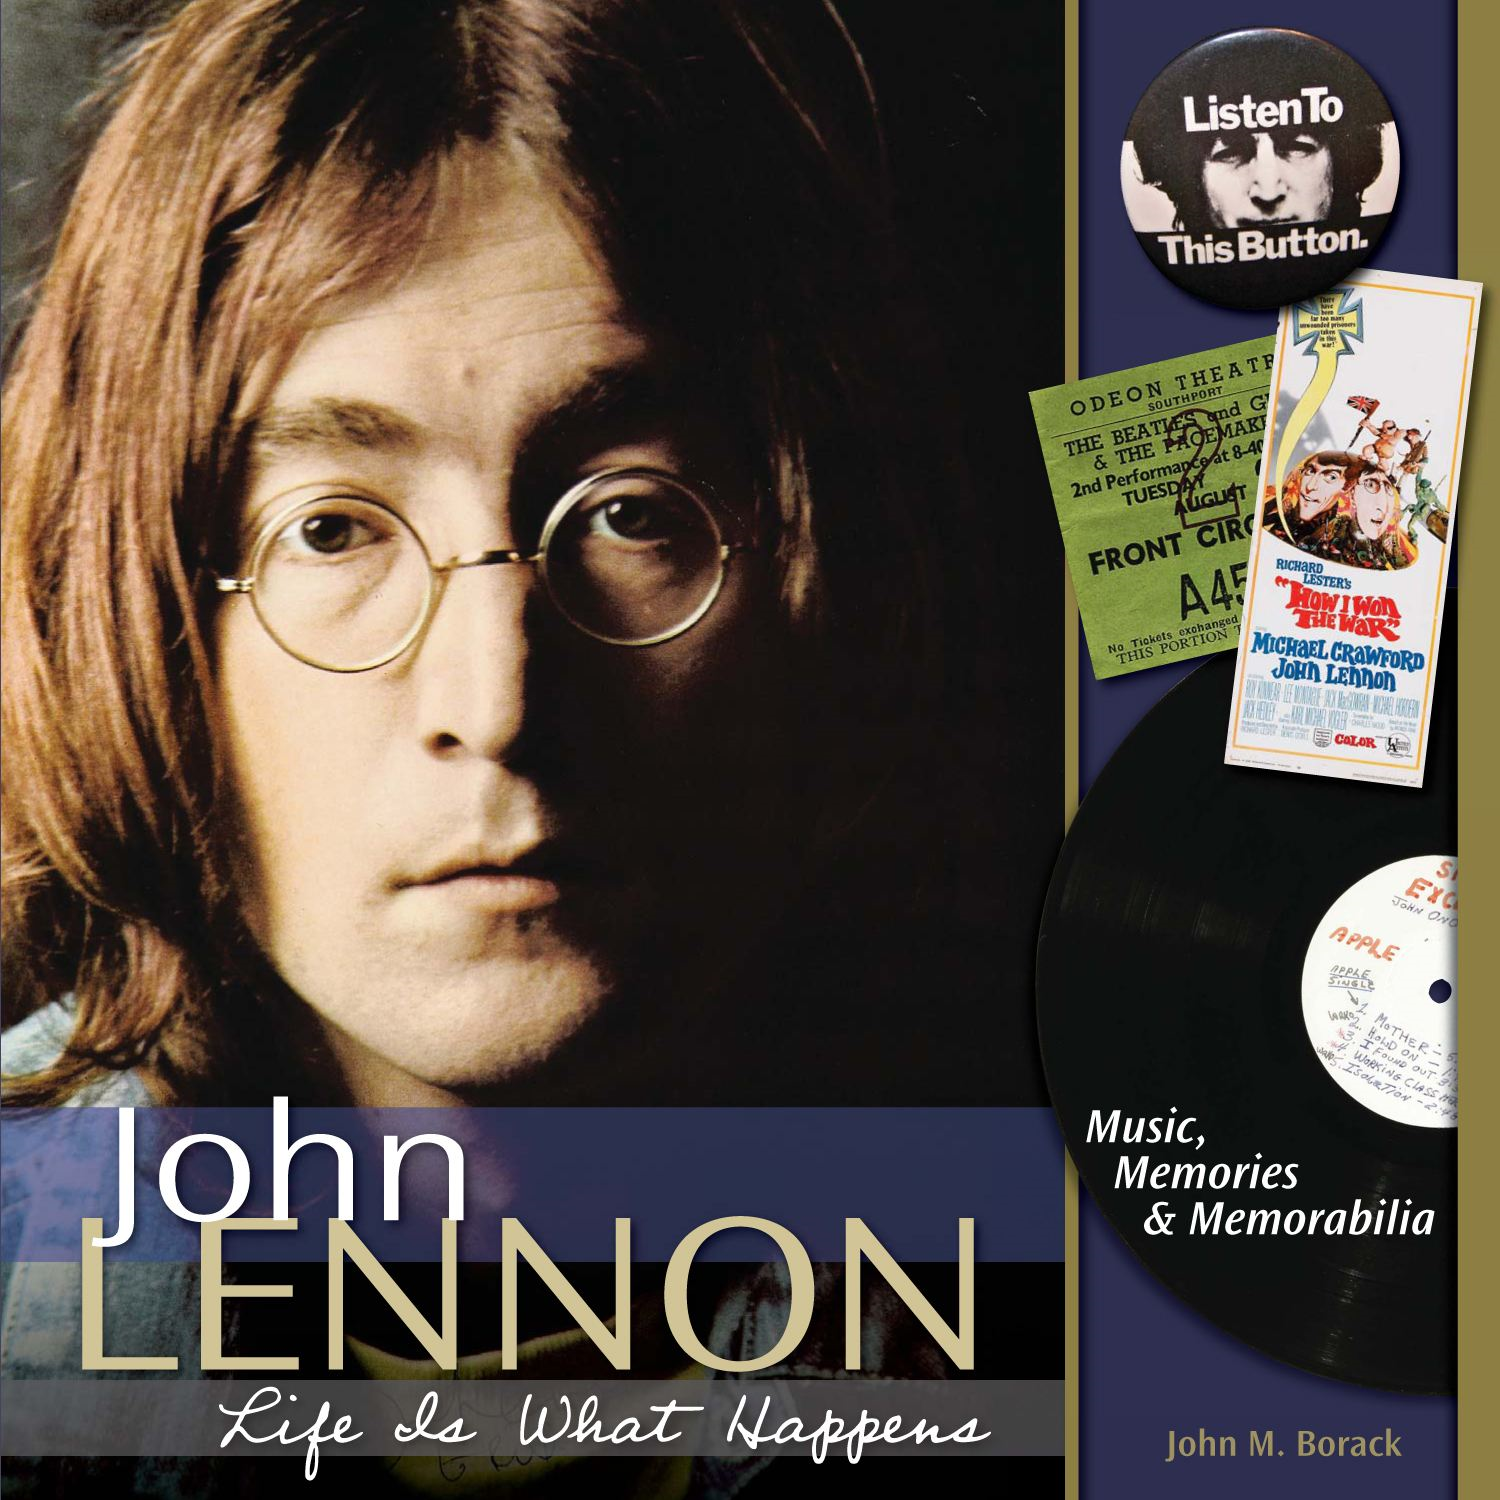 John Lennon: Music, Memories, and Memorabilia By: John Borack